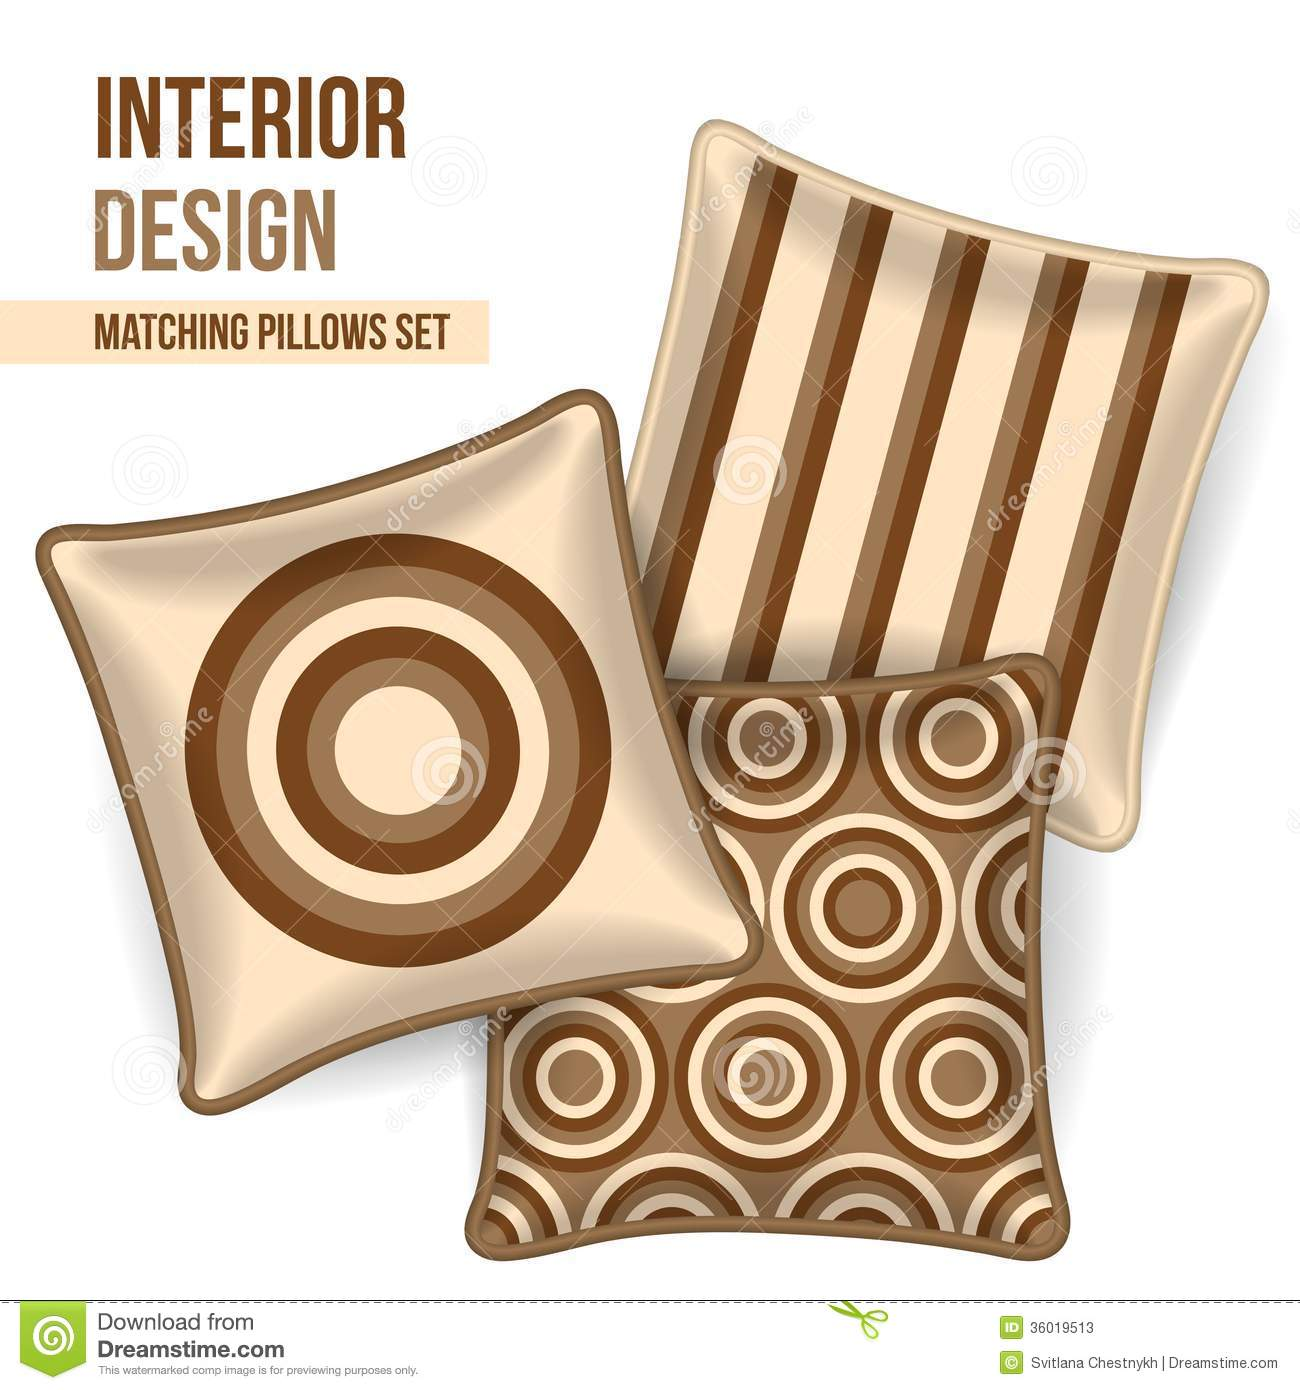 Set of matching decorative pillows for interior design brown